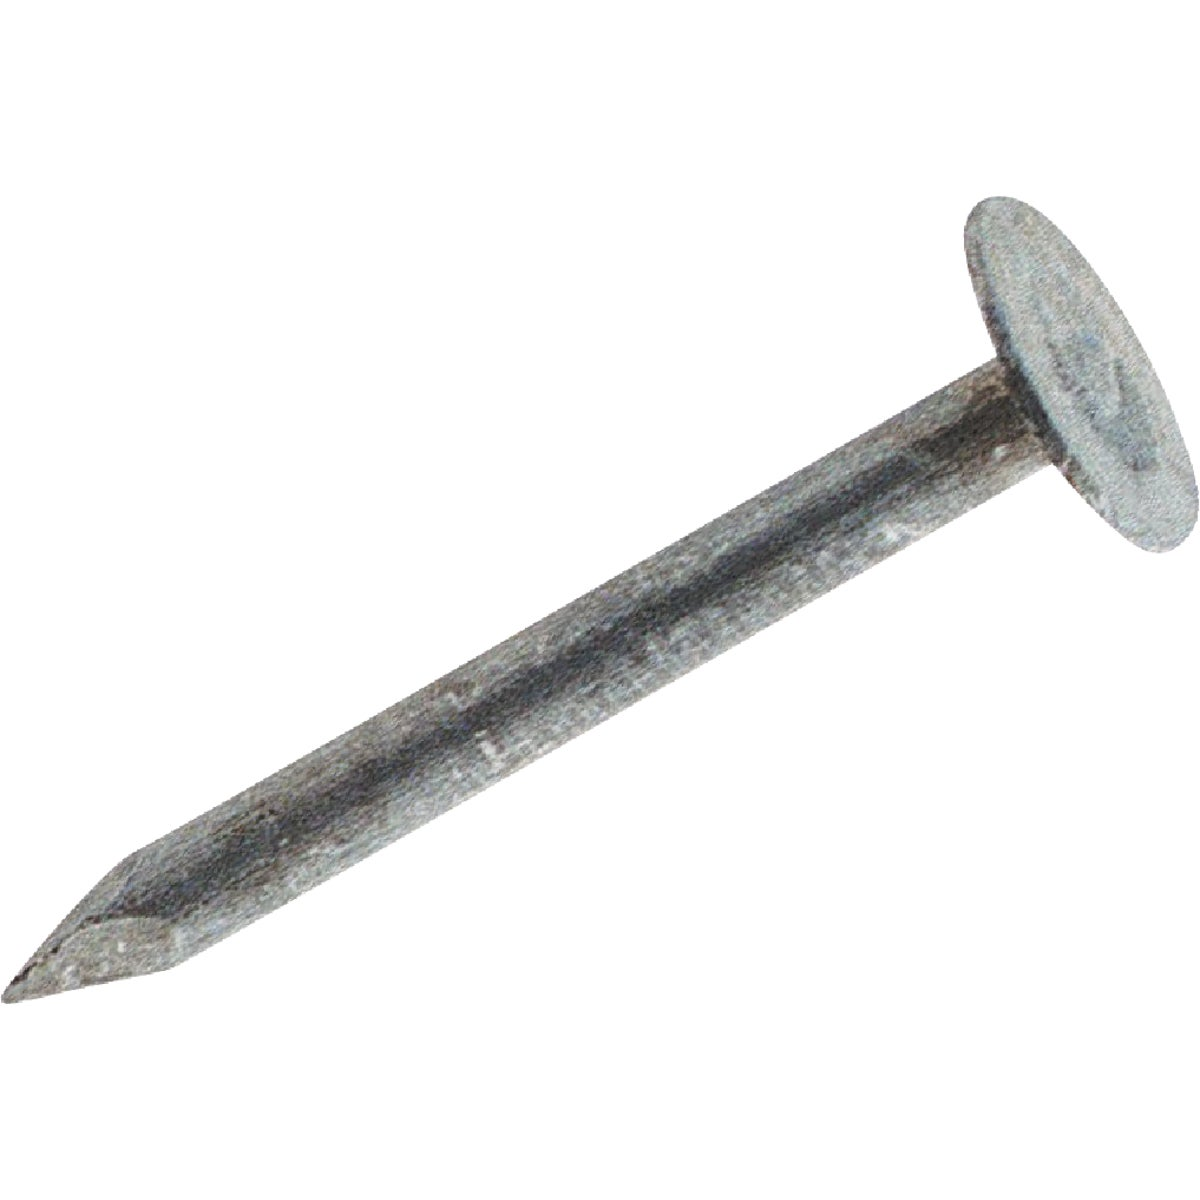 "1LB 3"" EG ROOF NAIL - 723497 by Primesource"